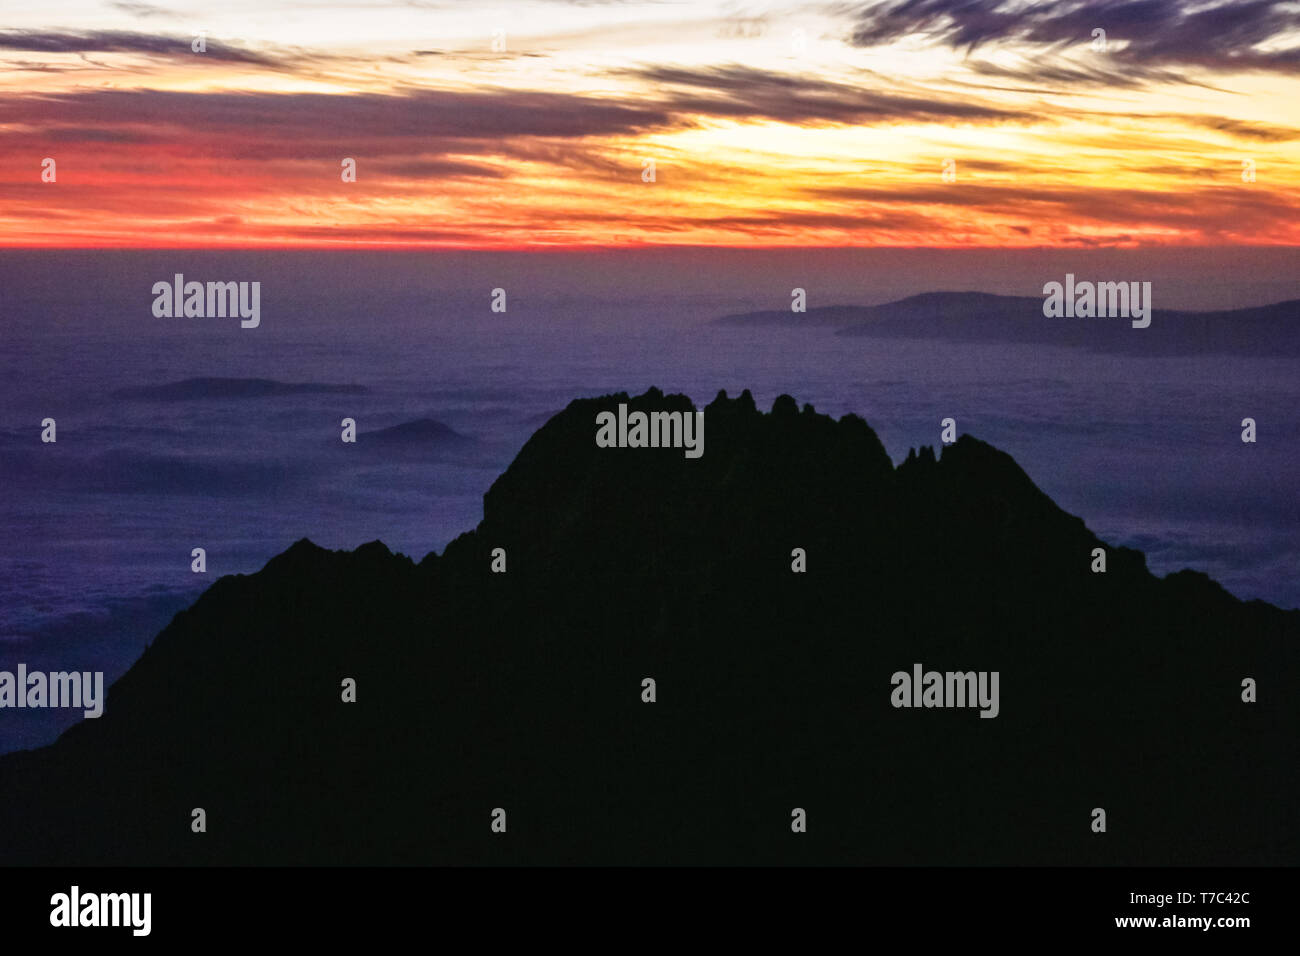 Orange sun is rising on the horizon, light falling on the clouds near the mountain peaks. Black sharp rocks. Adventures and trip in Africa. Stock Photo